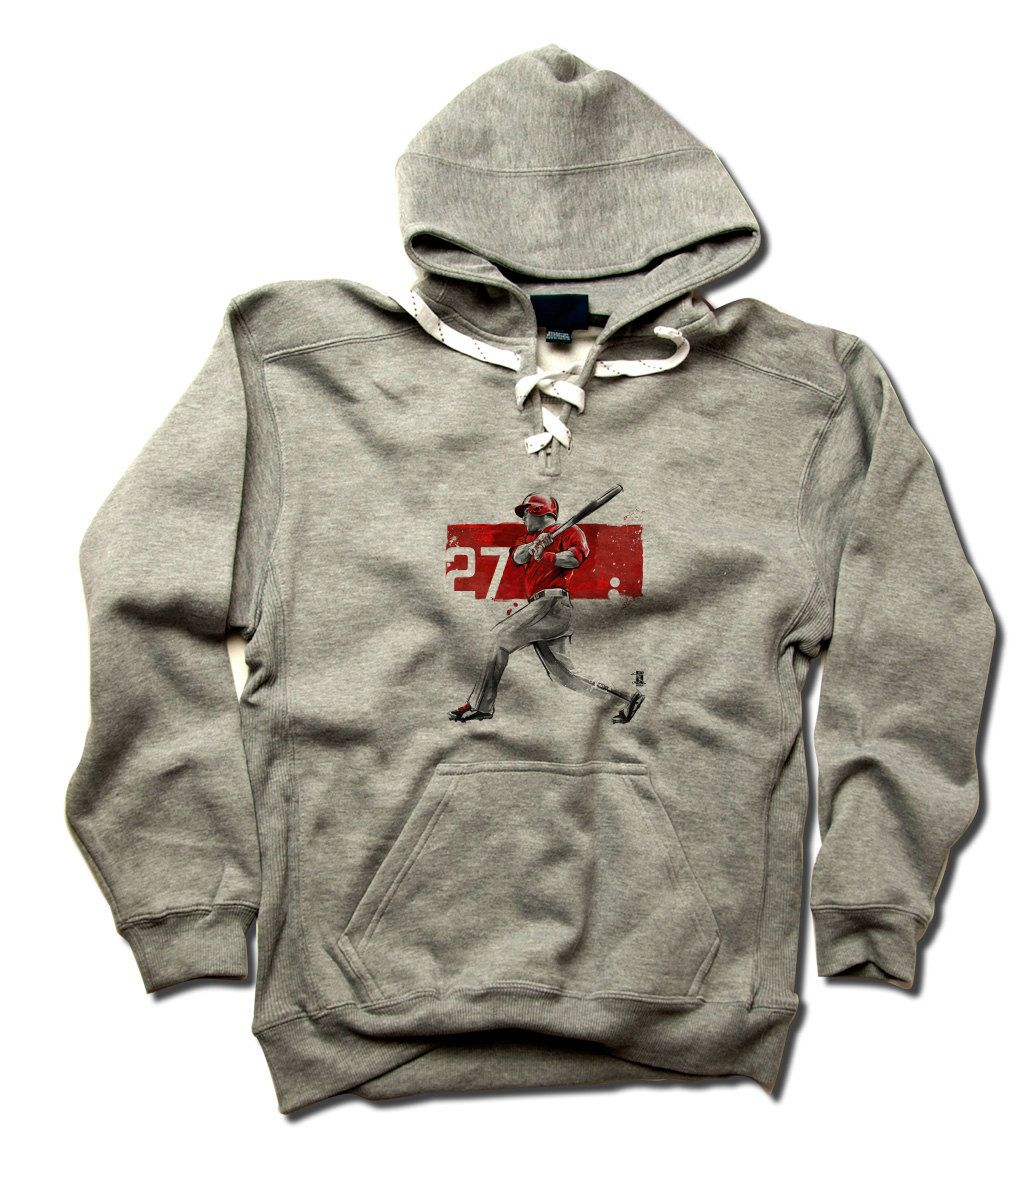 Mike Trout Clutch R Mike Trout Hoodie Los Angeles A Baseball Men/'s Hoodie